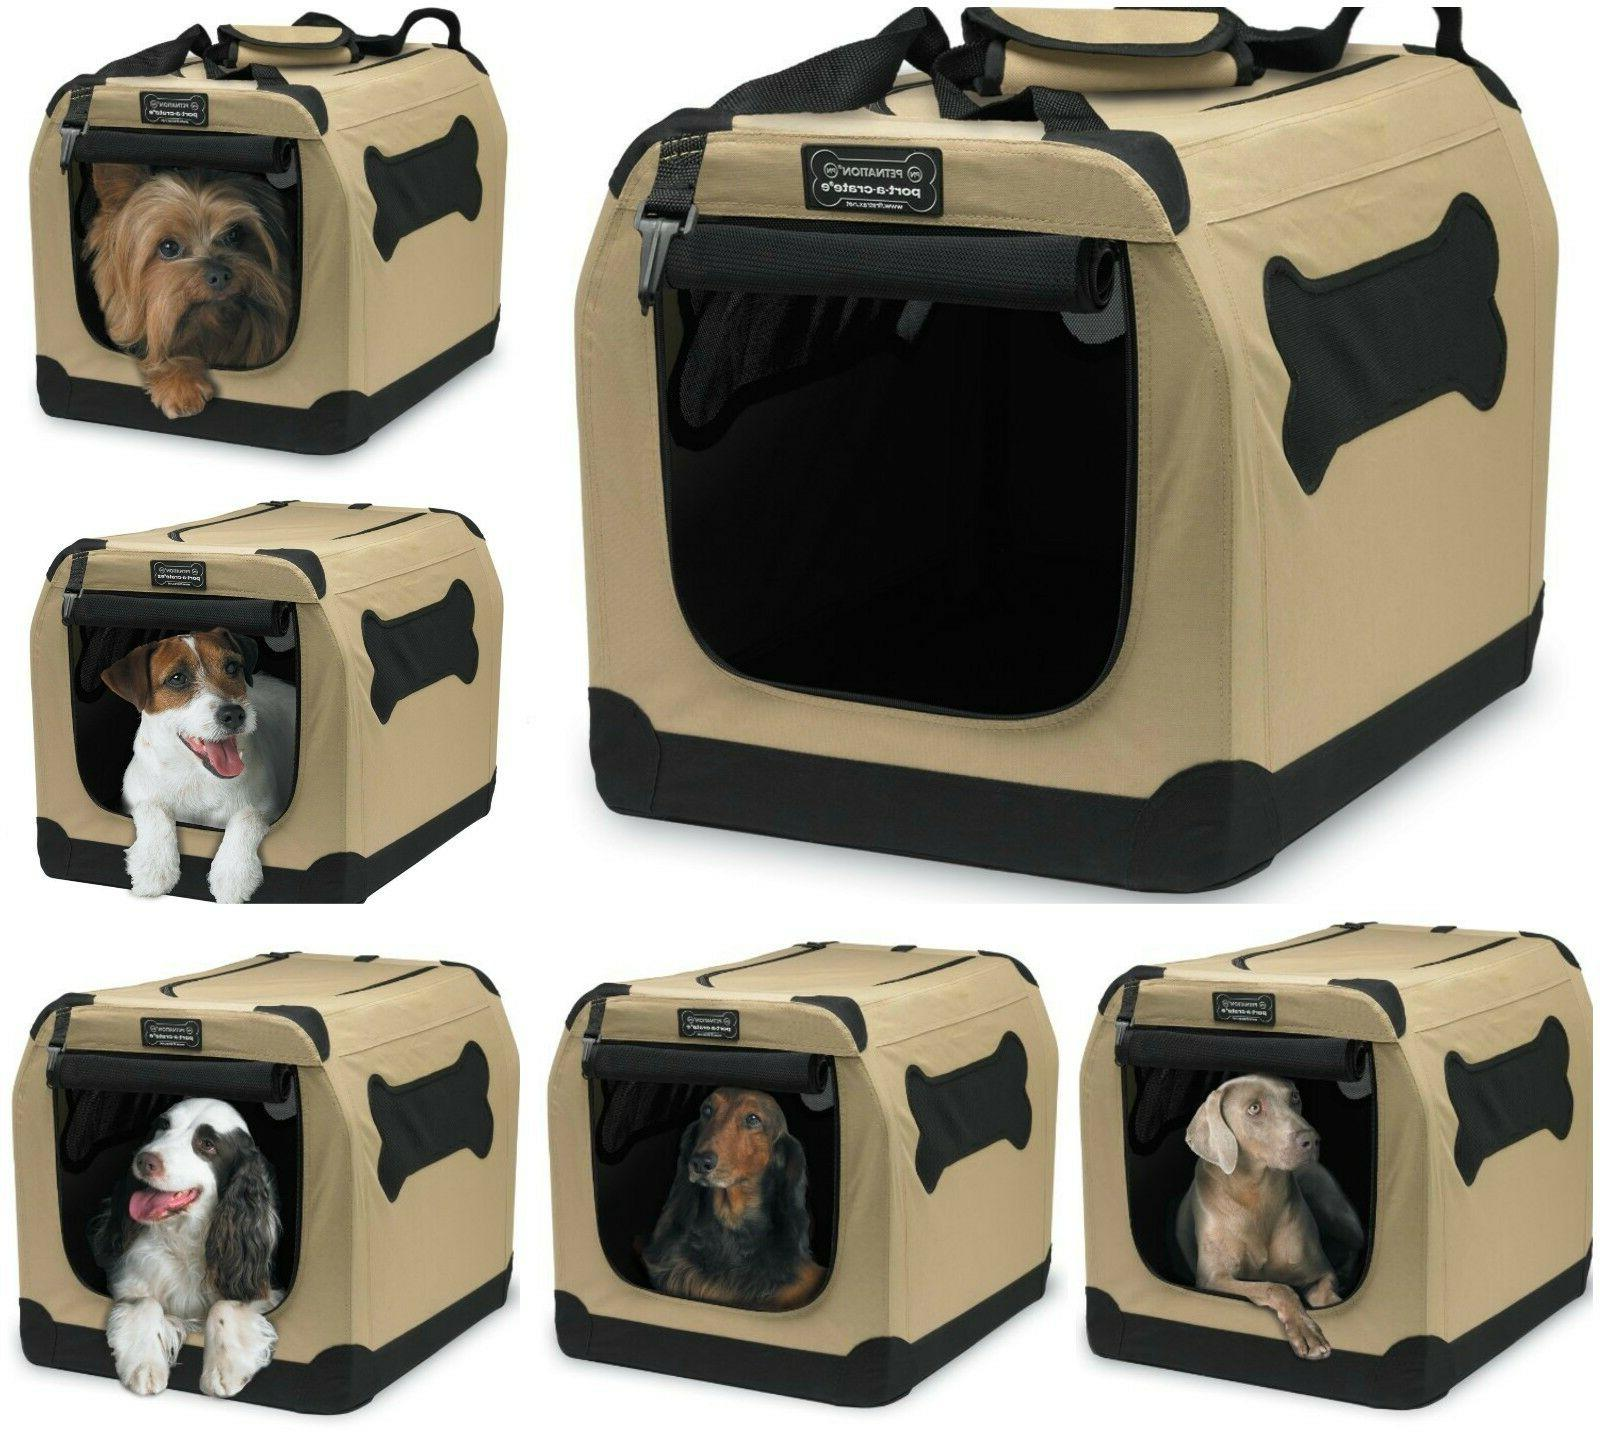 Indoor Pet Crate Home Portable Kennel Outdoor Dog Fabric Cag